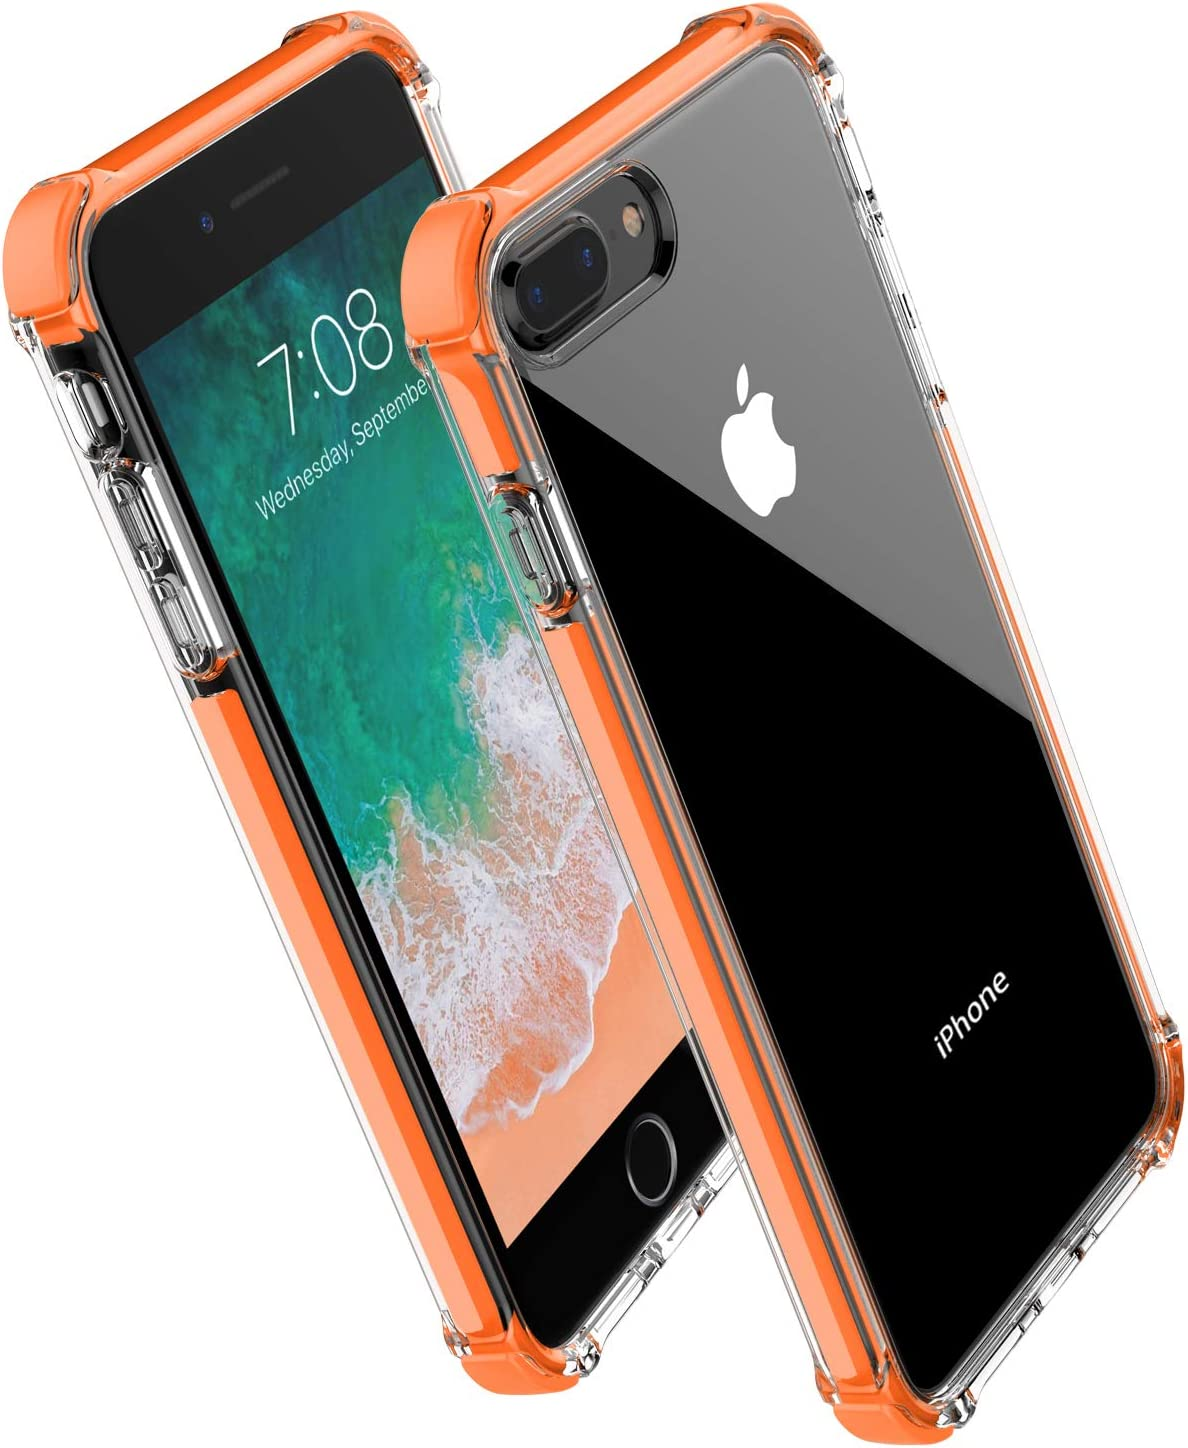 Noii for iPhone 8 Plus case iPhone 7 Plus case, Clear Hybrid Drop Protection case,[TPE Super Rubber Bumper] Shockproof case,Upgraded Reinforced Edges Technology,Heavy Duty Protective Cover-Orange